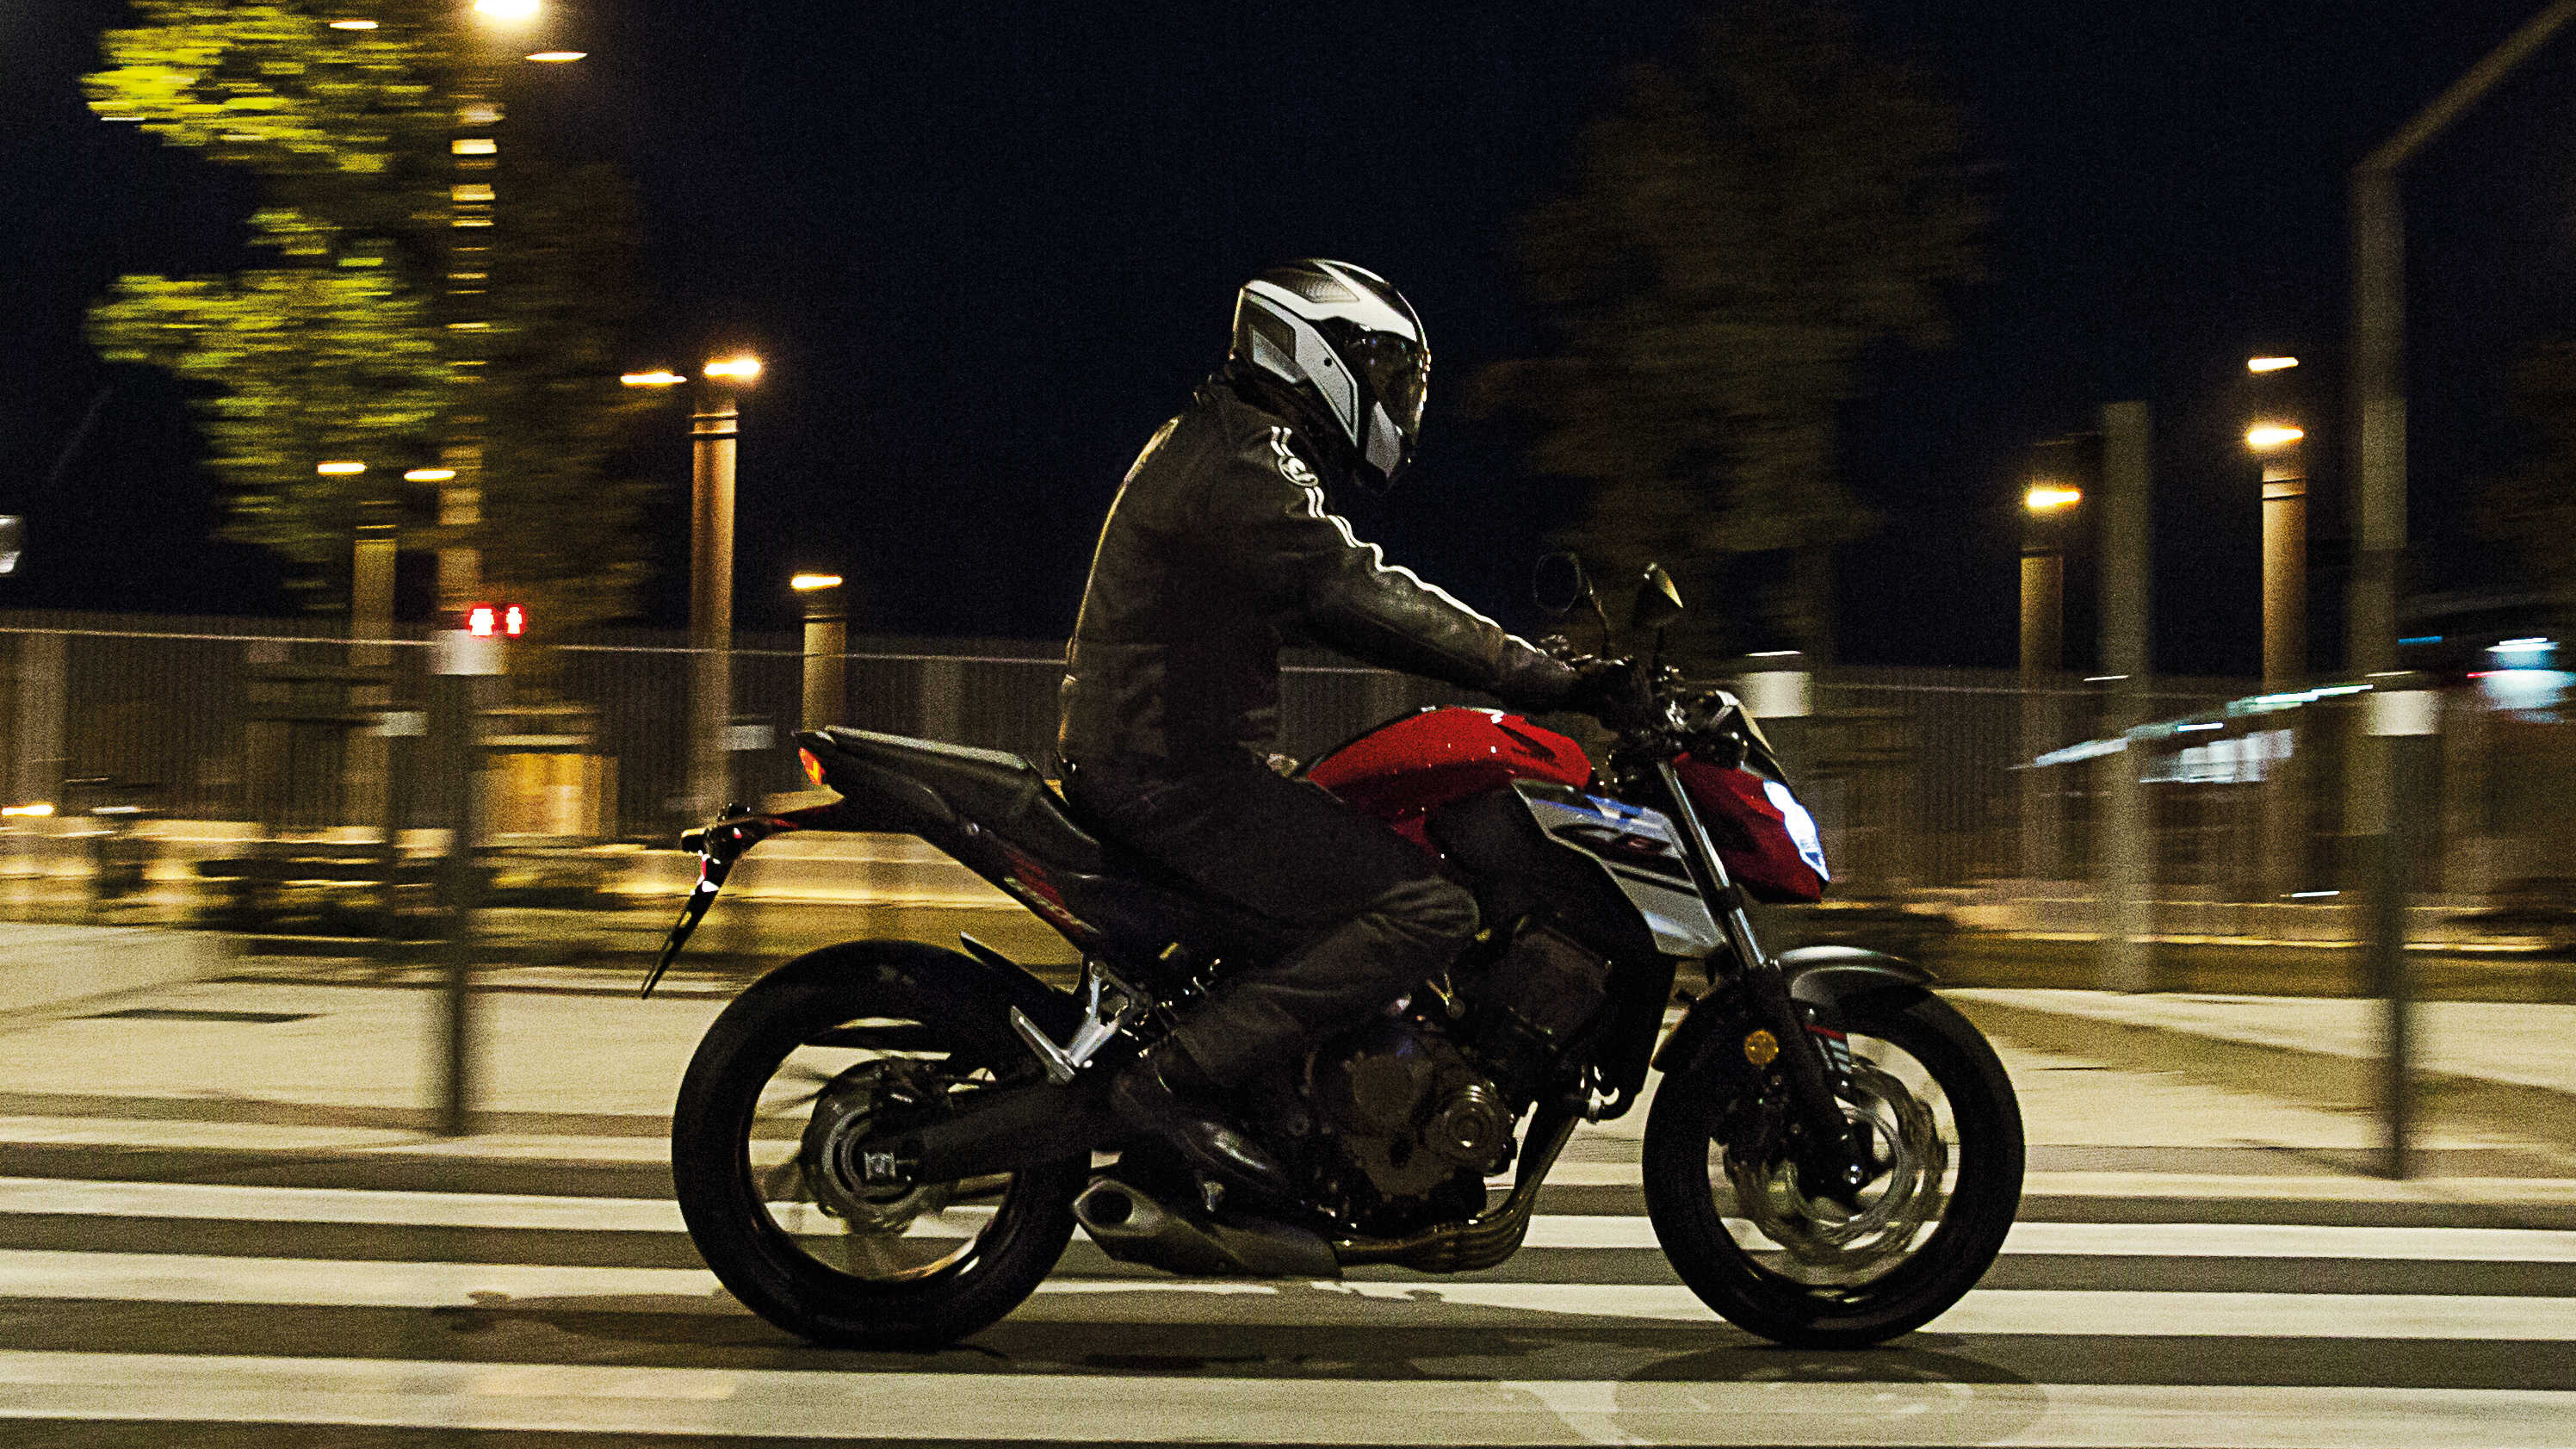 2018 Honda Cb650f How Does It Stack Up With The Fz 07 And Sv650 2014 Cbr650f Wiring Diagram Top Speed